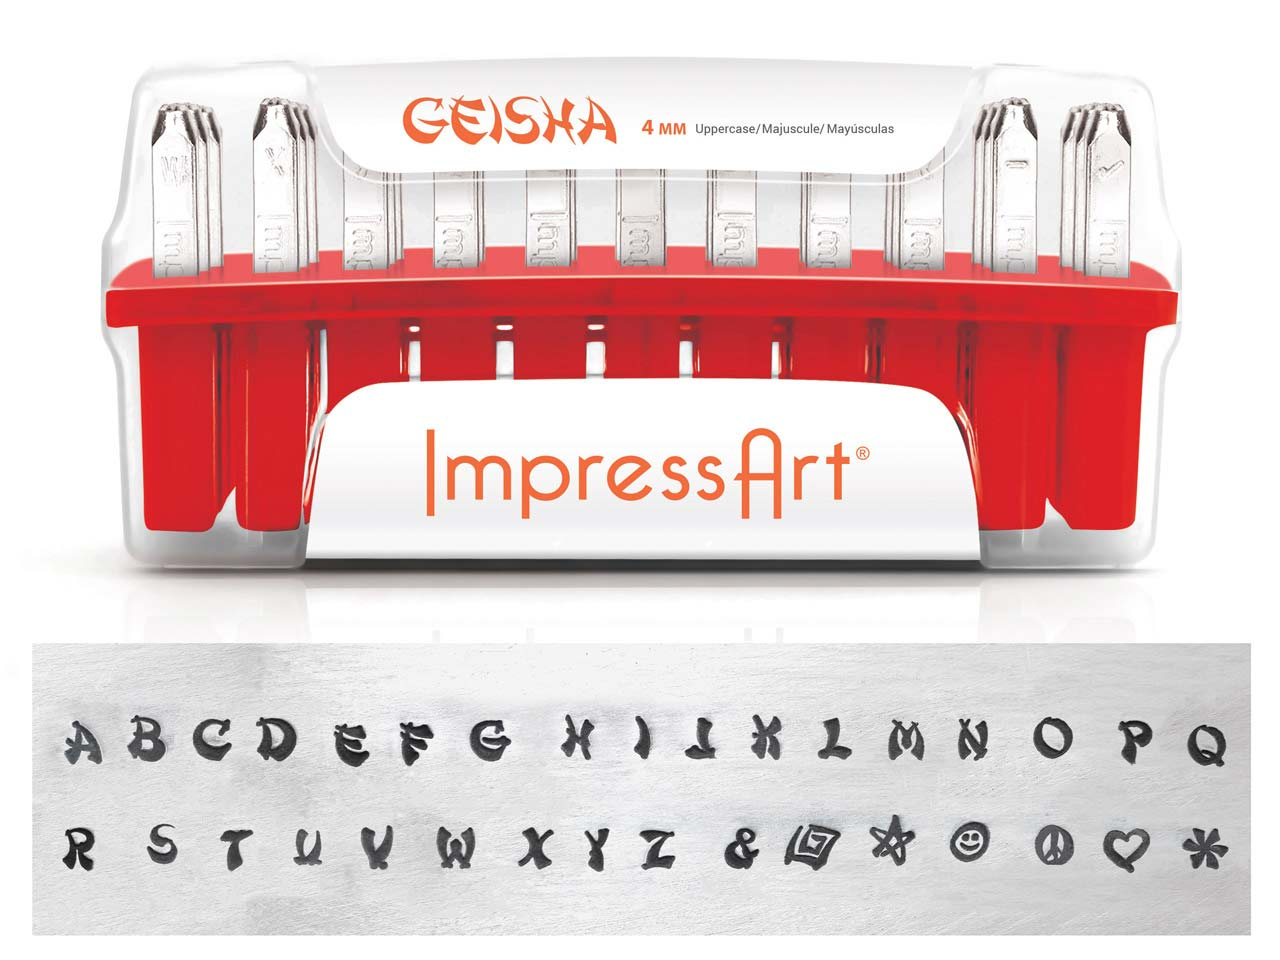 Impressart Geisha Uppercase Letter Design Stamp Set 4mm